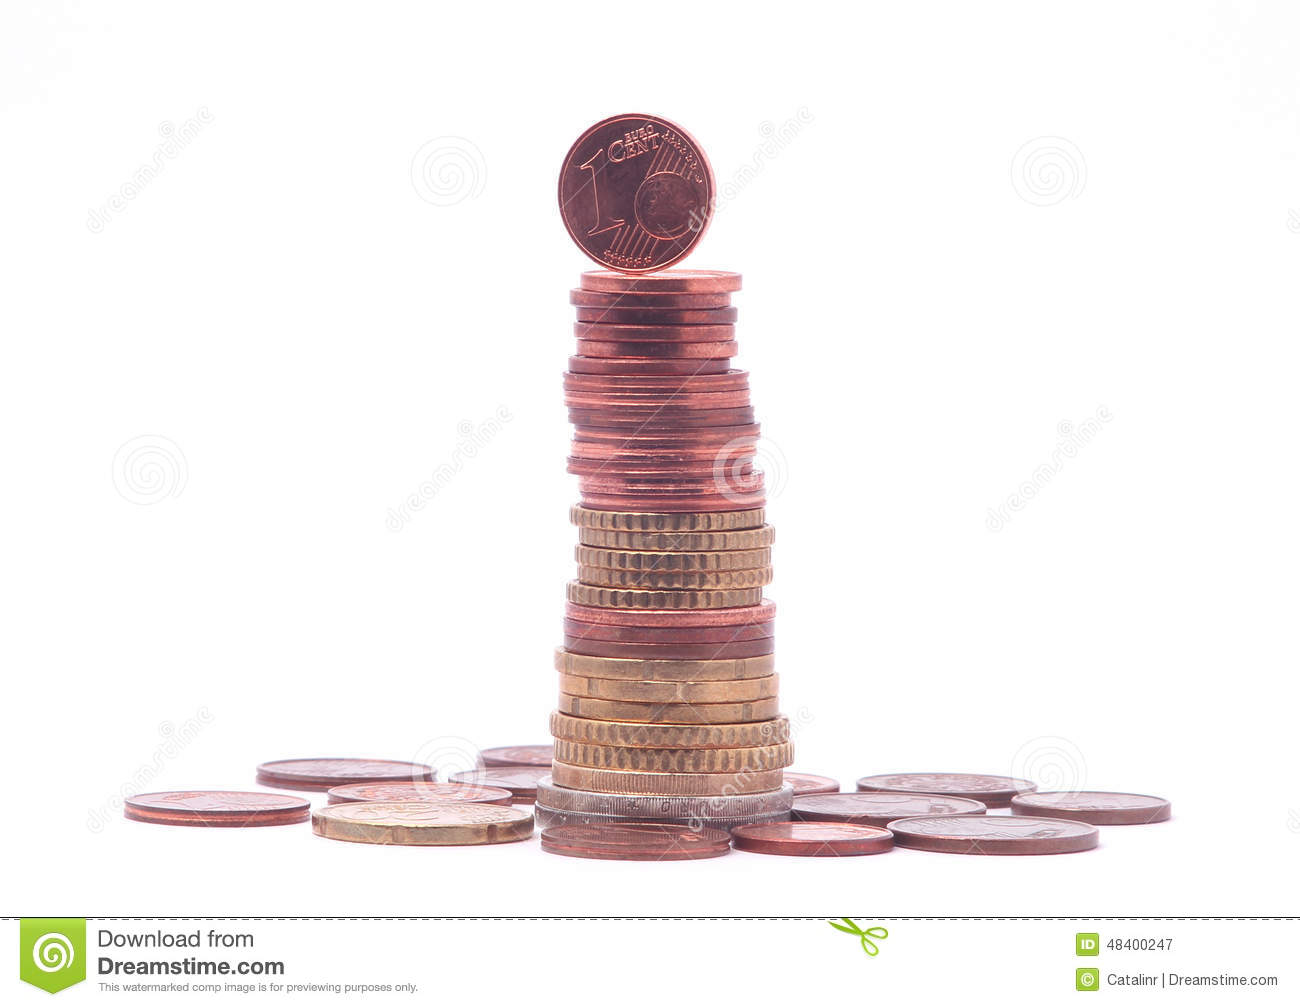 1 Cent Coin Standing On Top Of Stack Of Euro Coins Stock Image Image Of Column Investment 48400247